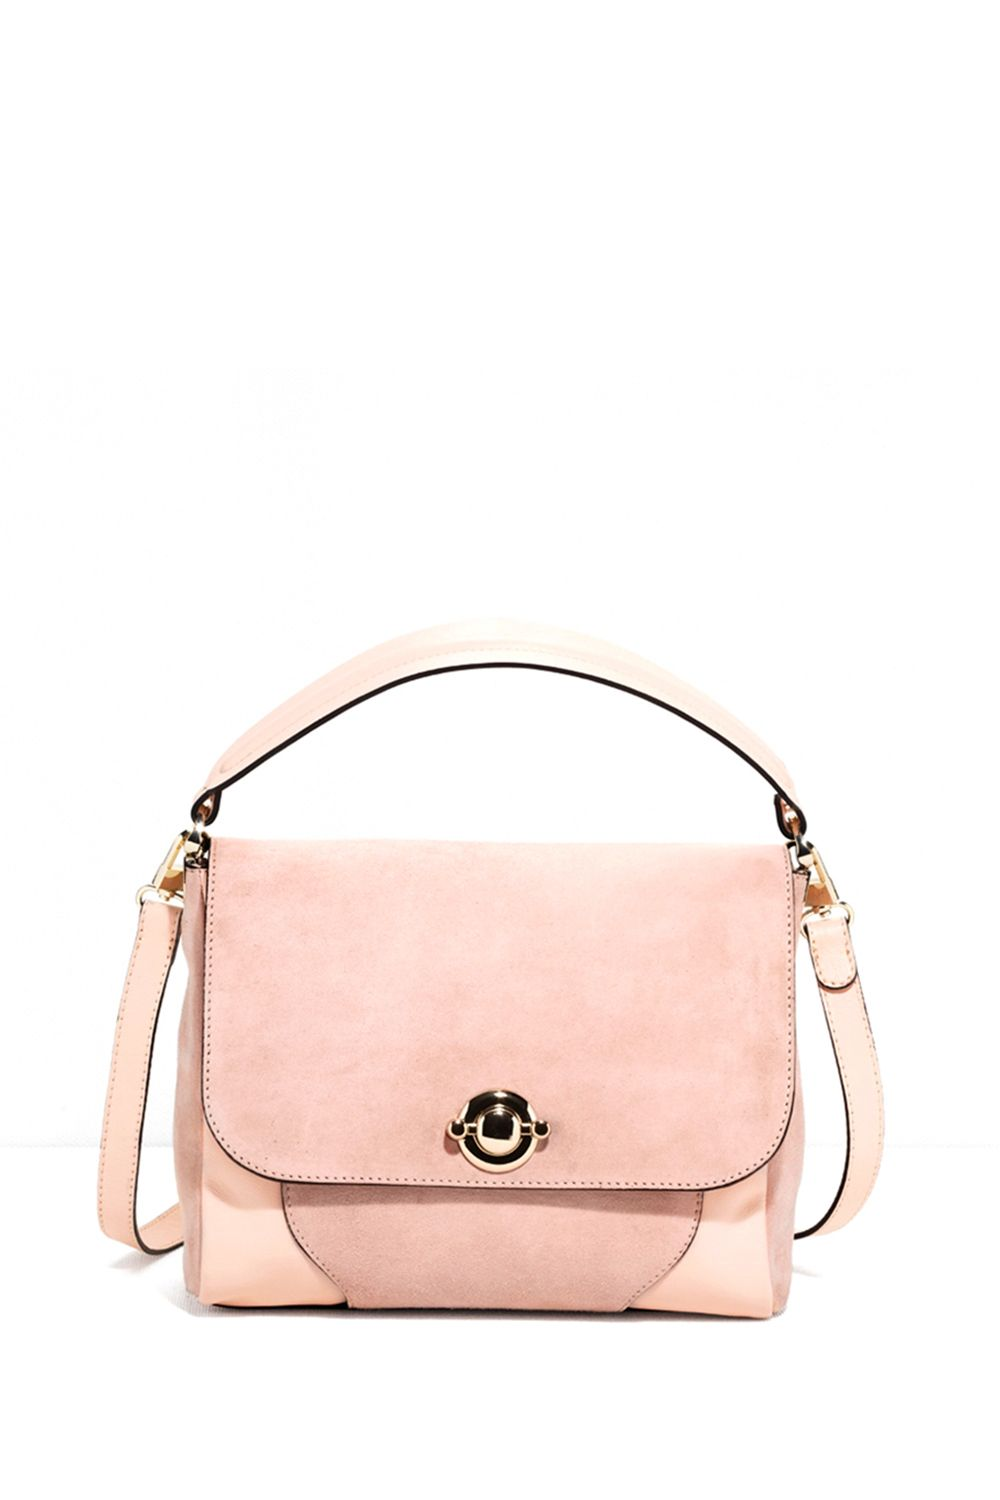 "<p>A pale pink lady bag that's perfect for work. </p><p><strong>Suede Shoulder Bag, $195; <a href=""http://www.stories.com/us/Bags/All_bags/Suede_Shoulder_Bag/590765-102954642.1"">stories.com</a>.</strong></p>"